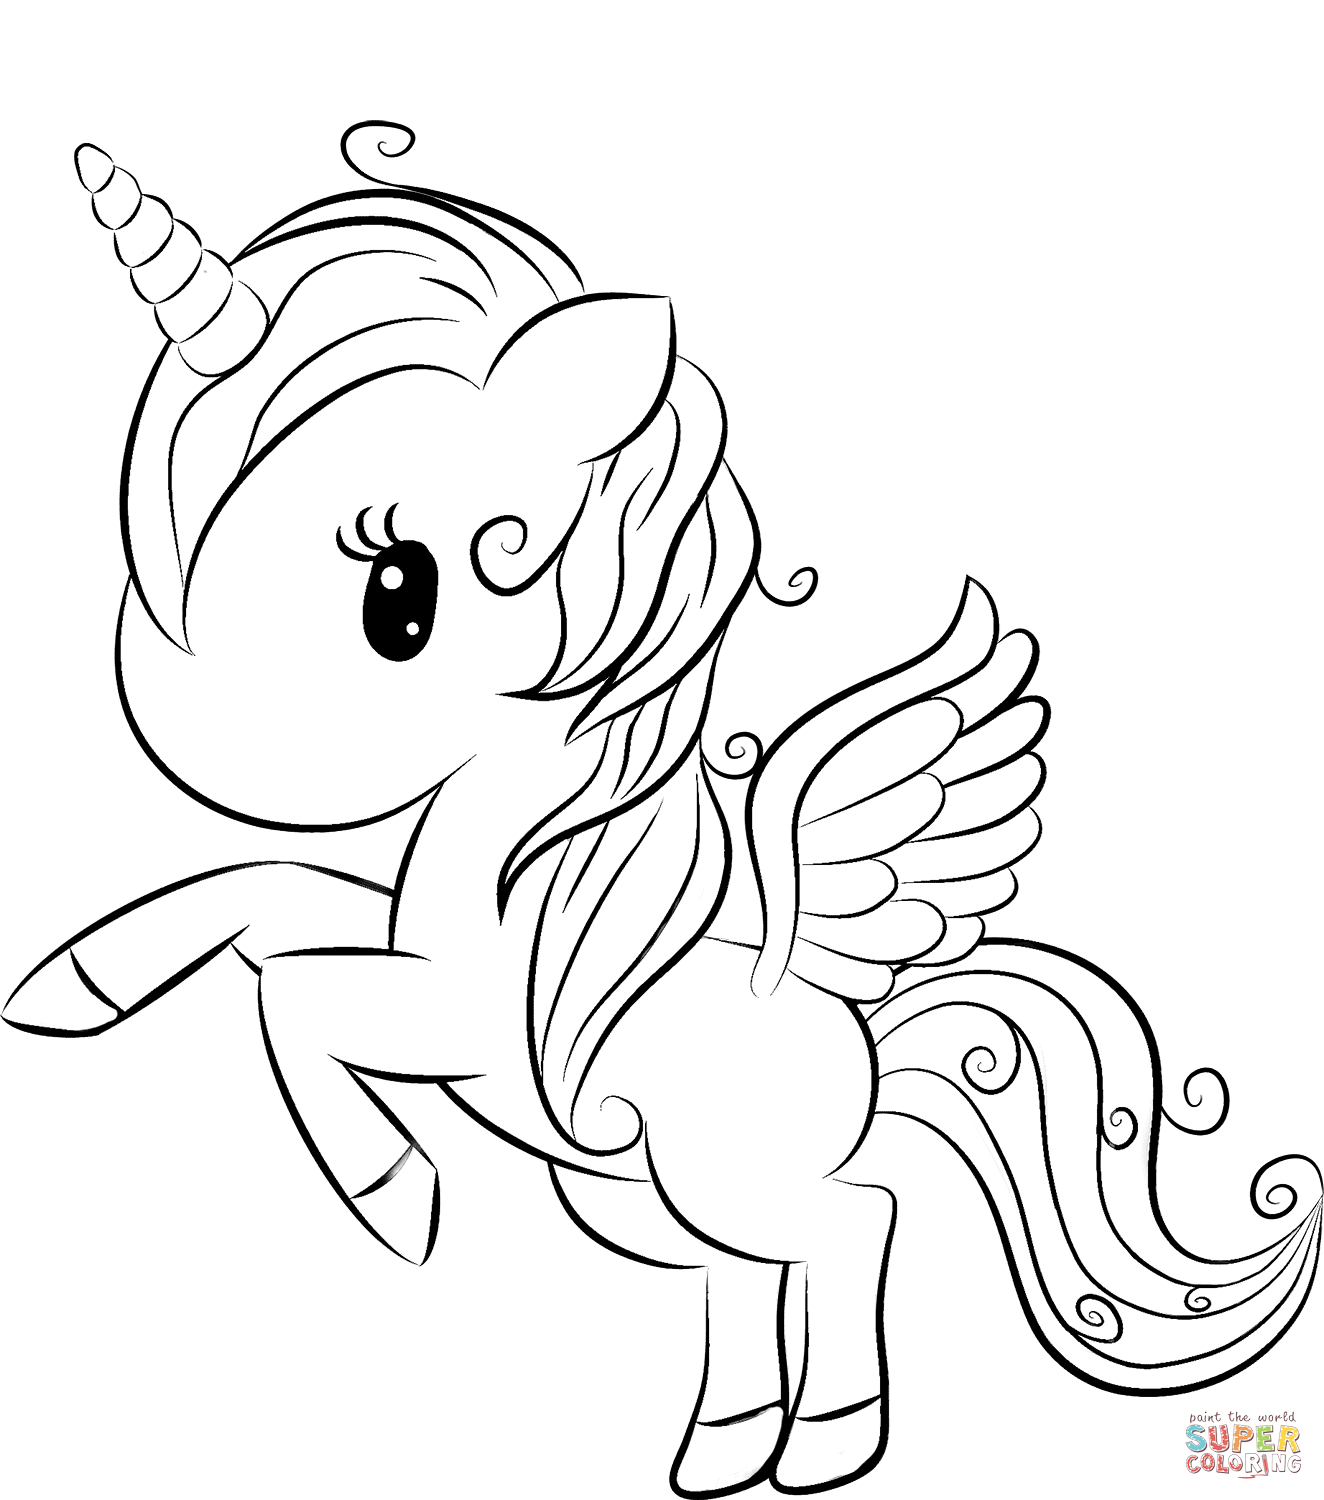 Cute Unicorn coloring page | Free Printable Coloring Pages ... | coloring pages printable unicorn